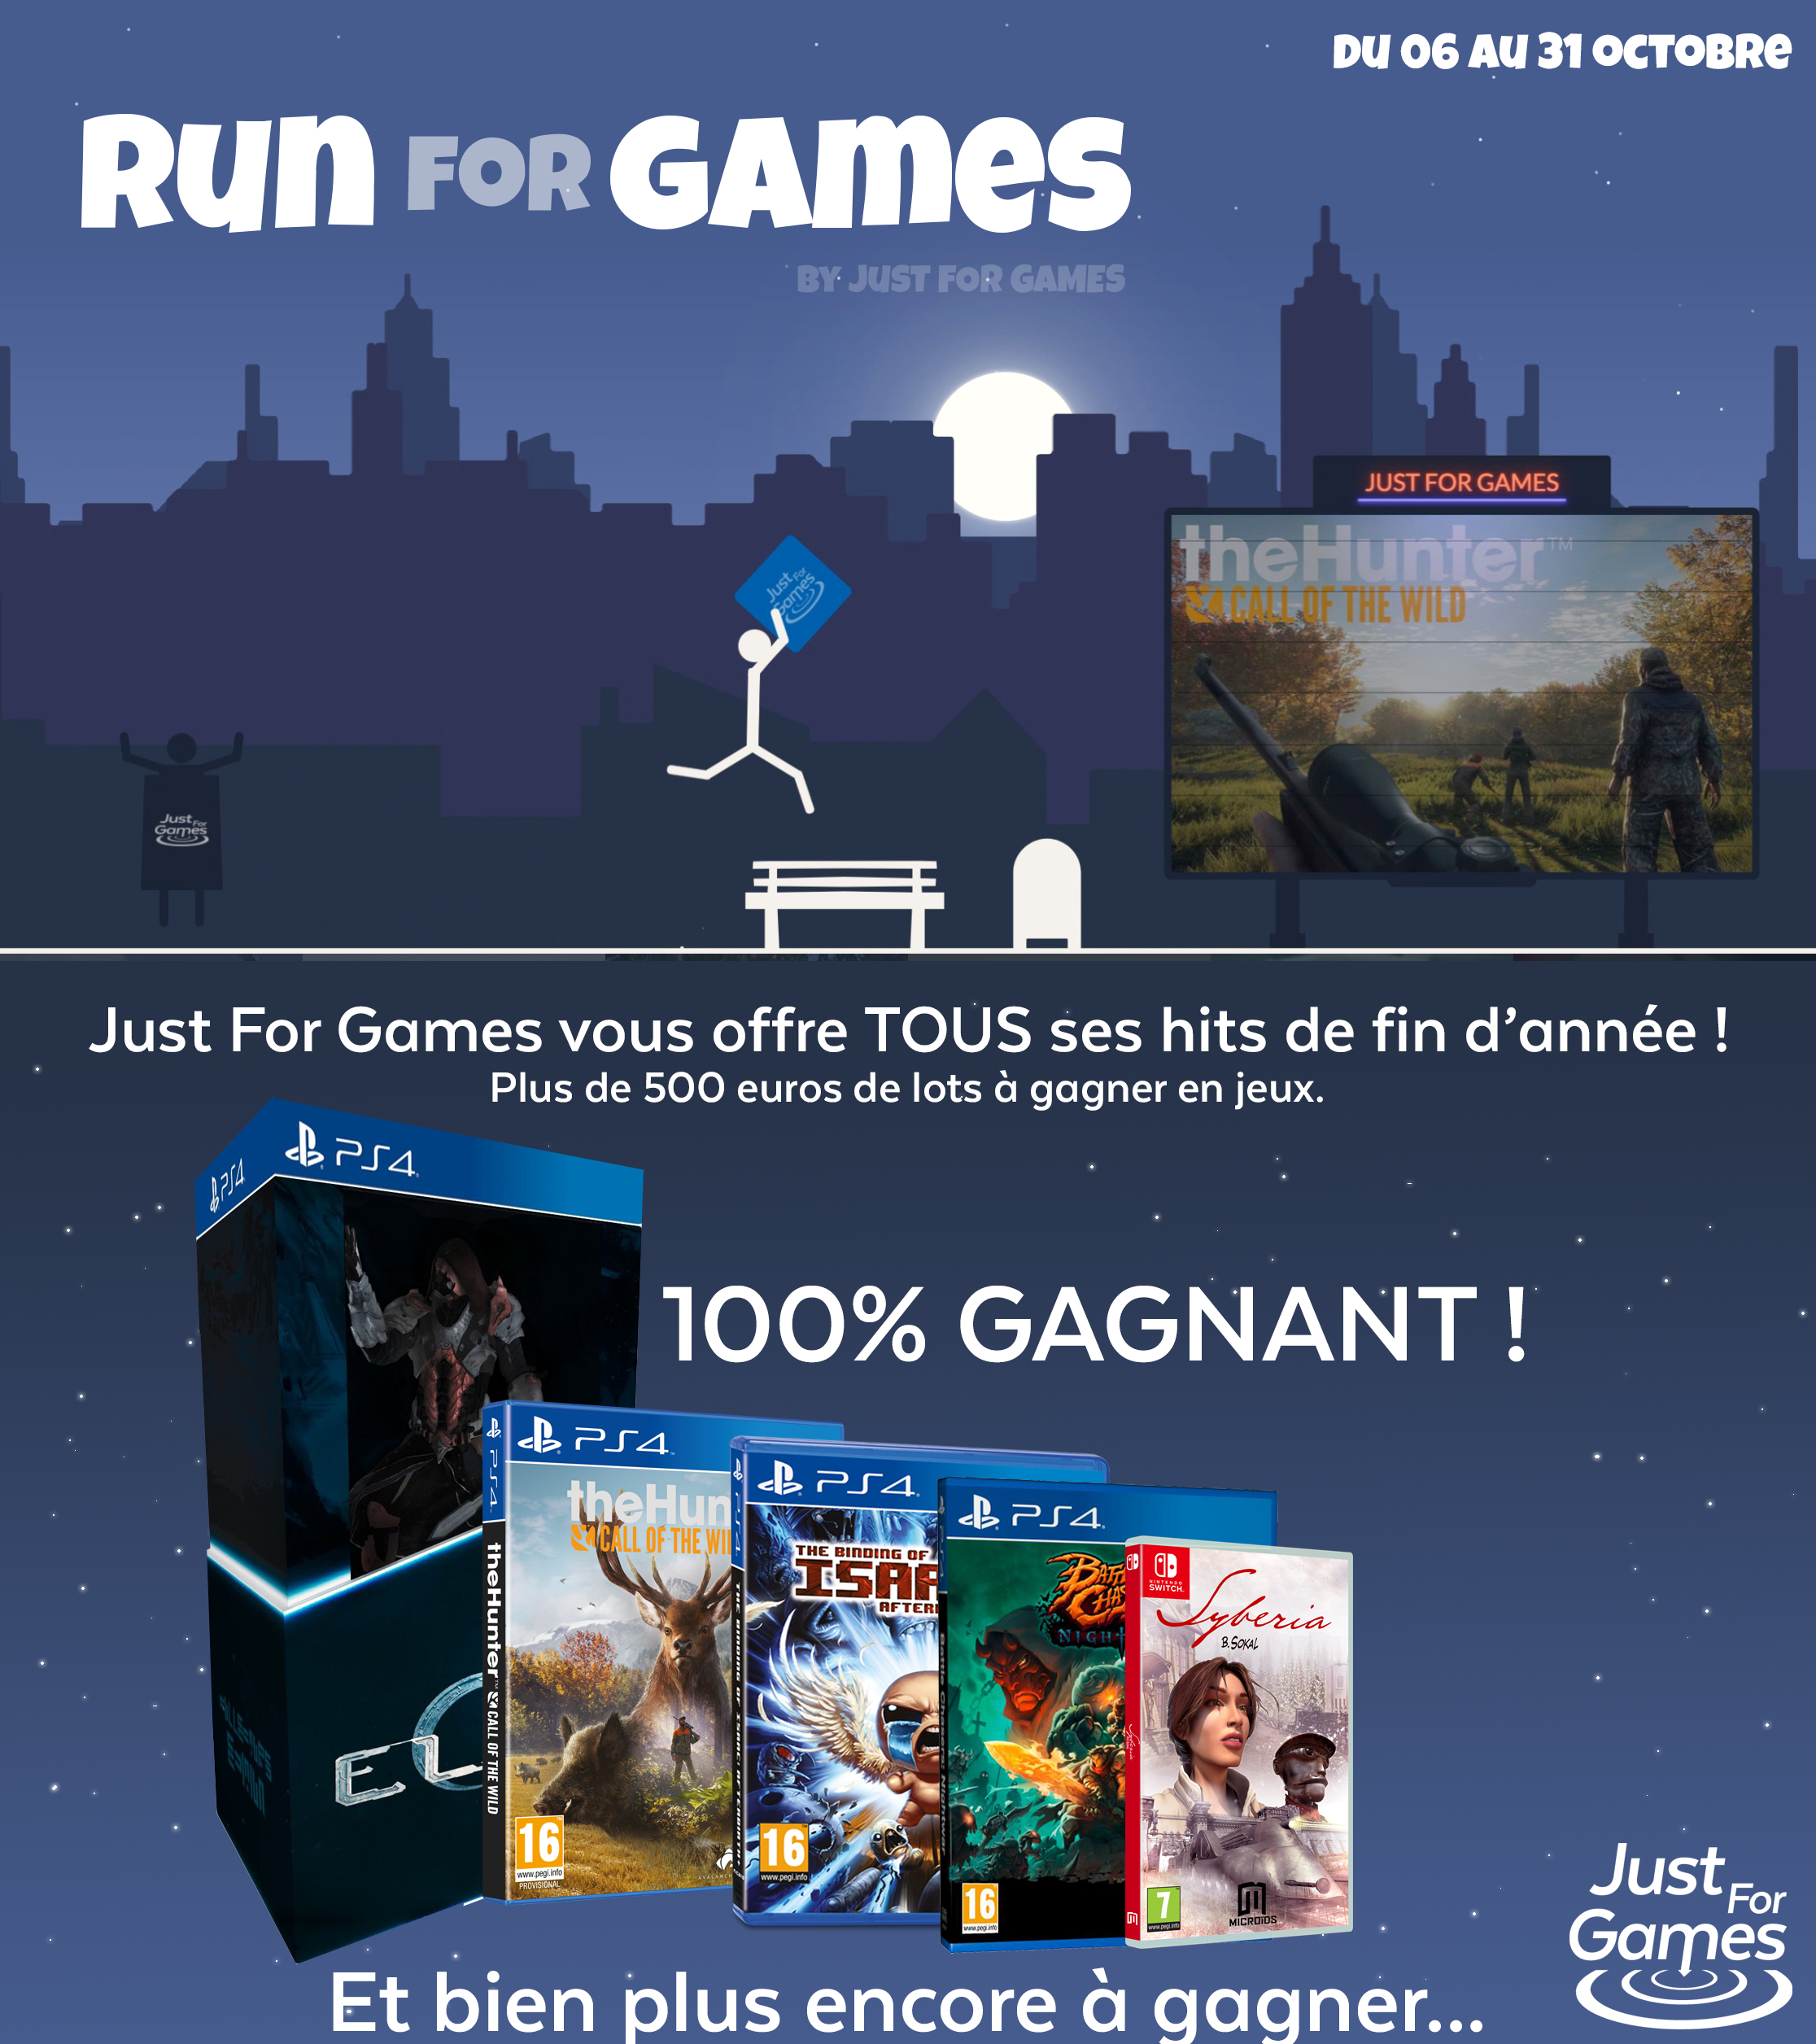 Run for Games - Just for Games